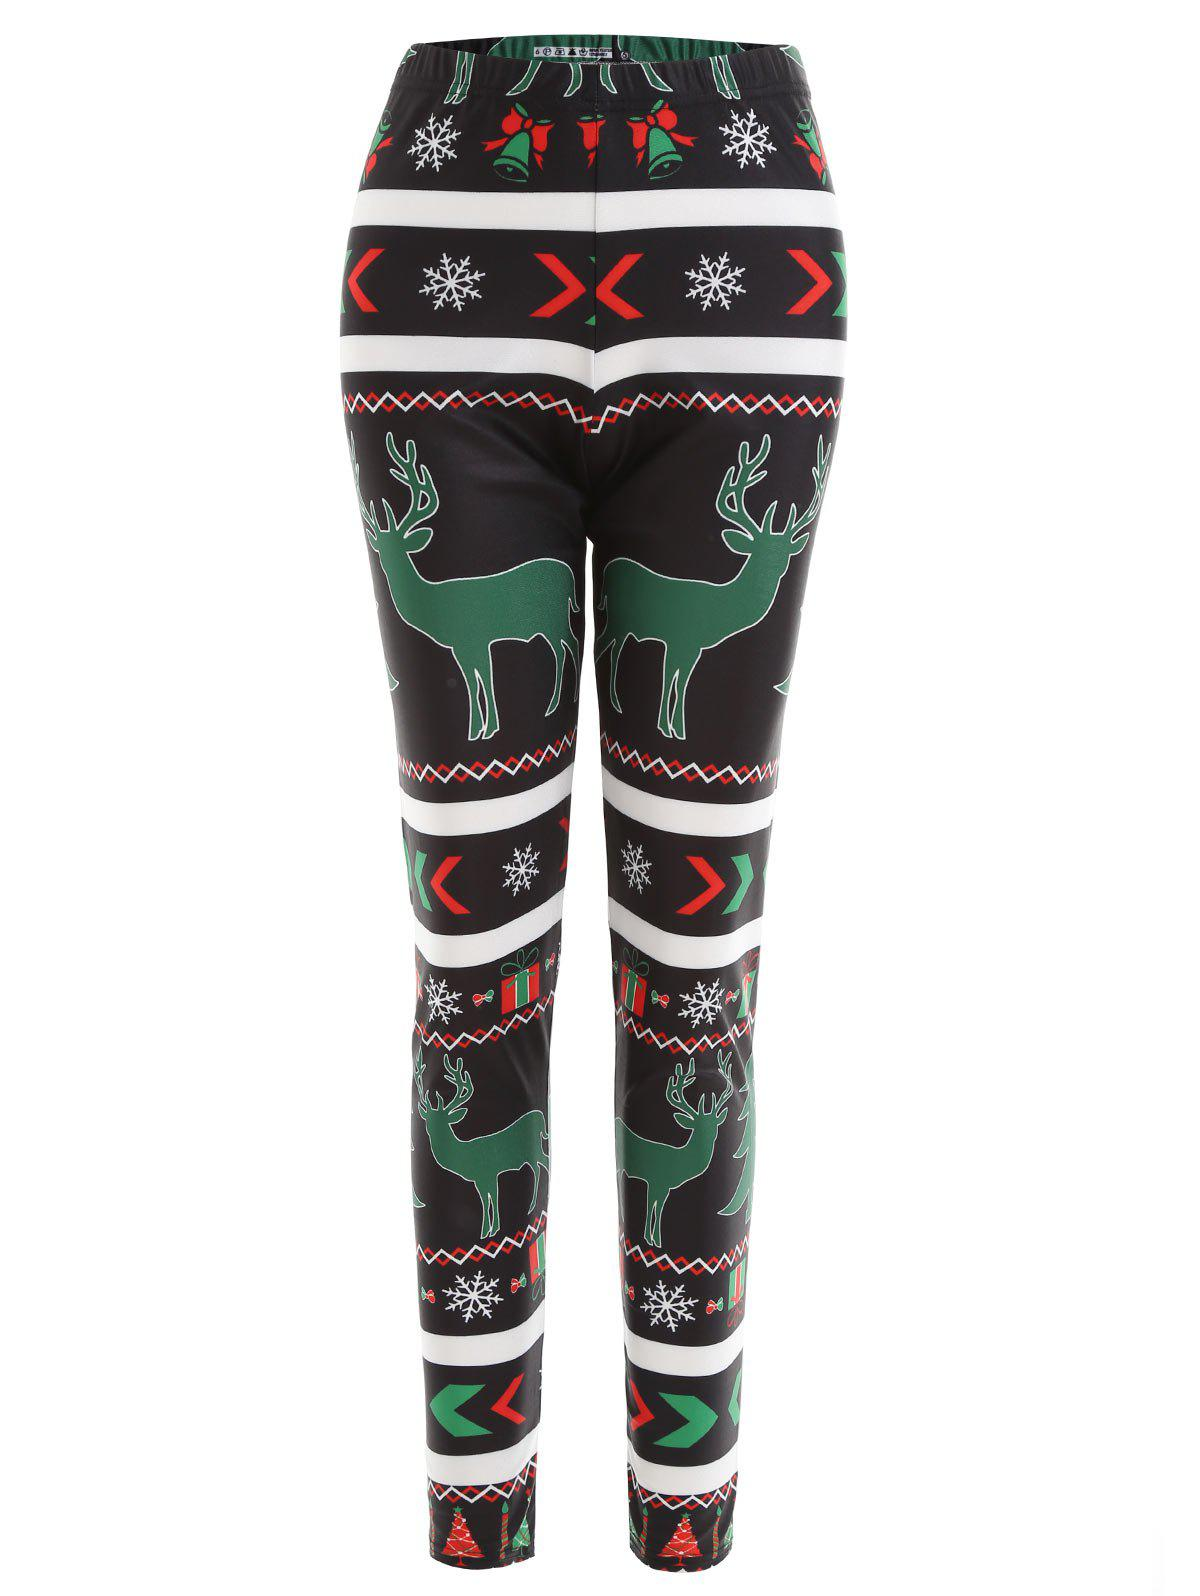 Christmas Elk Snowflake Printed Plus Size LeggingsWOMEN<br><br>Size: 3XL; Color: BLACK; Style: Casual; Length: Normal; Material: Polyester,Spandex; Fit Type: Skinny; Waist Type: Mid; Closure Type: Elastic Waist; Pattern Type: Animal; Pant Style: Pencil Pants; With Belt: No; Weight: 0.2300kg; Package Contents: 1 x Leggings;